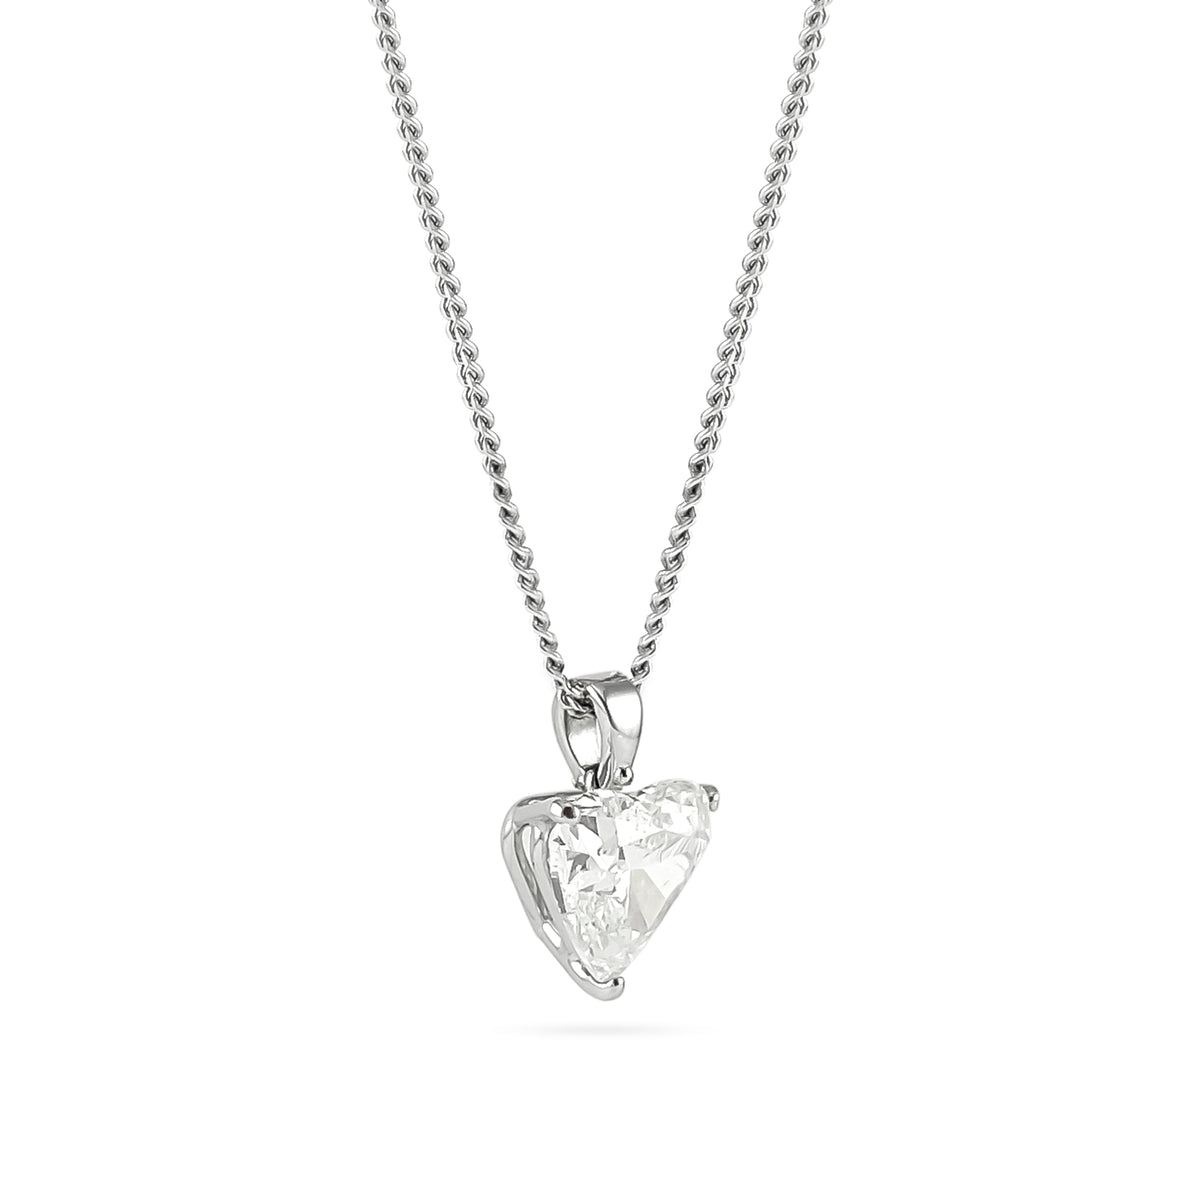 3.07ct Heart-Cut Diamond Pendant